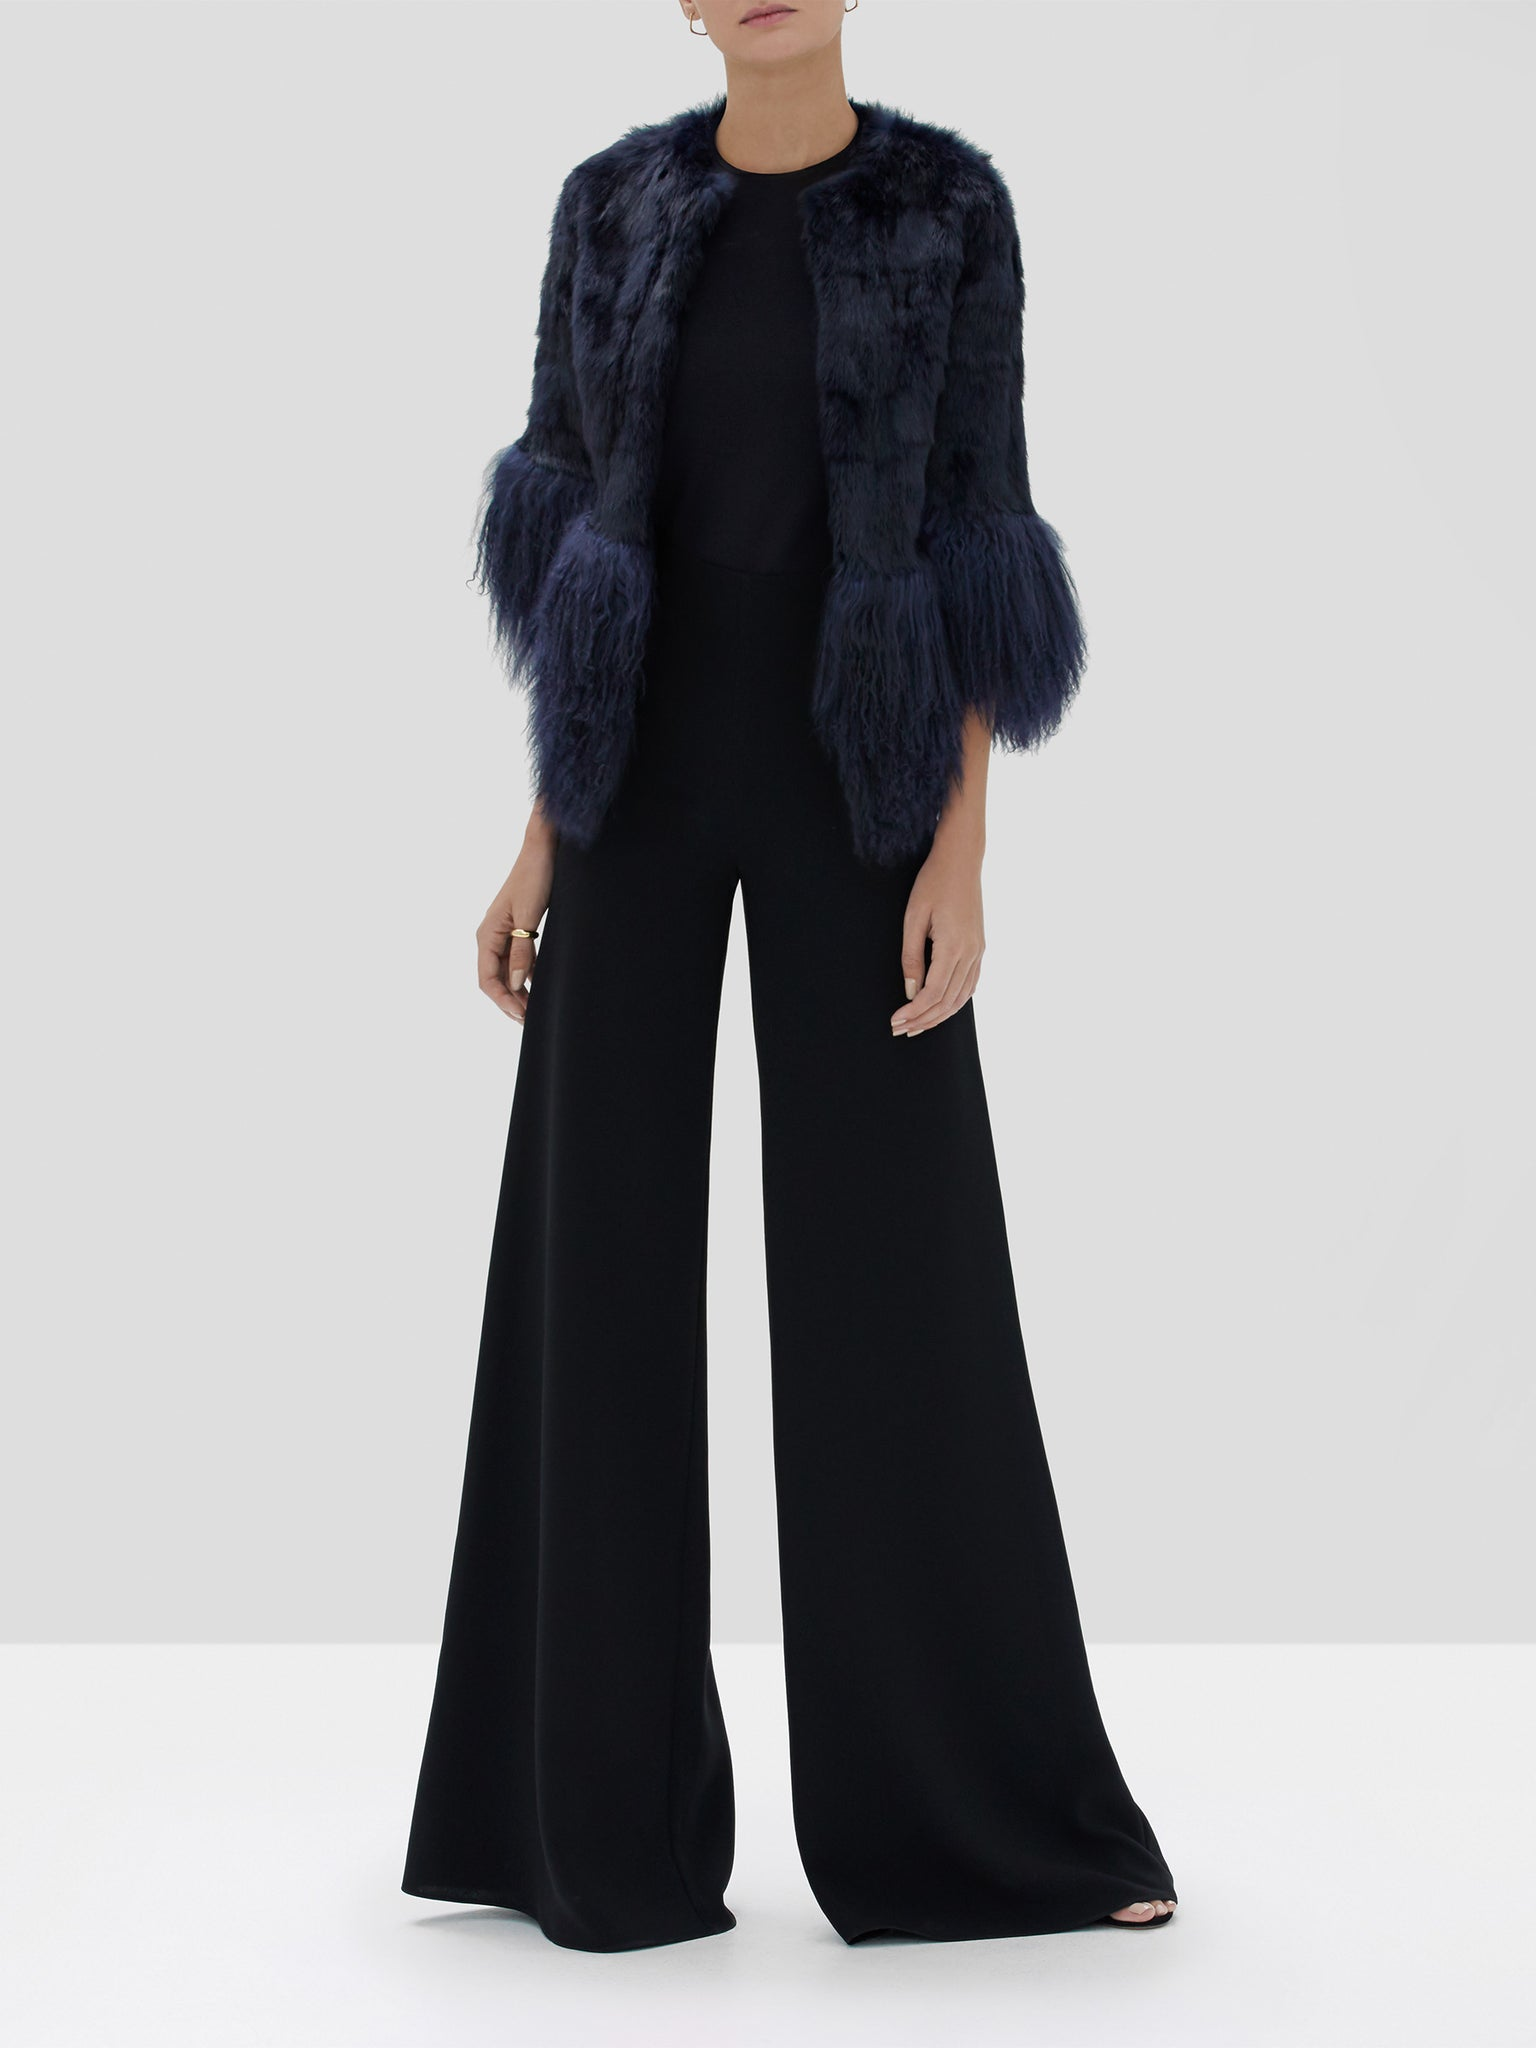 Alexis Sawyer Jacket Dark Navy, Irvine Pant Black from the Fall Winter 2019 Ready To Wear Collection